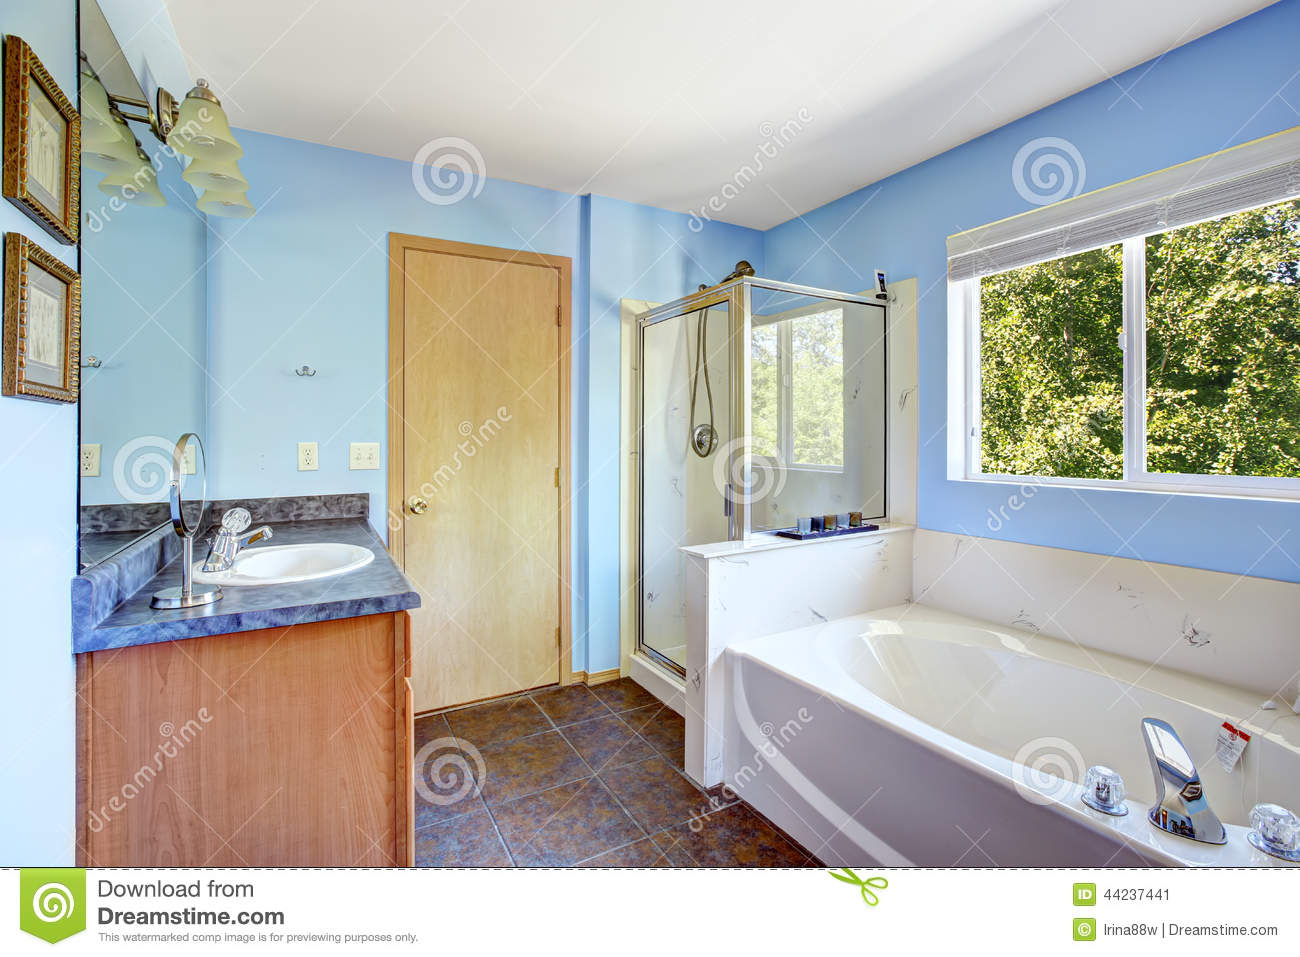 Light Bathroom Colors Very Bright Bathroom In Light Blue Color Stock Photo Image 44237441